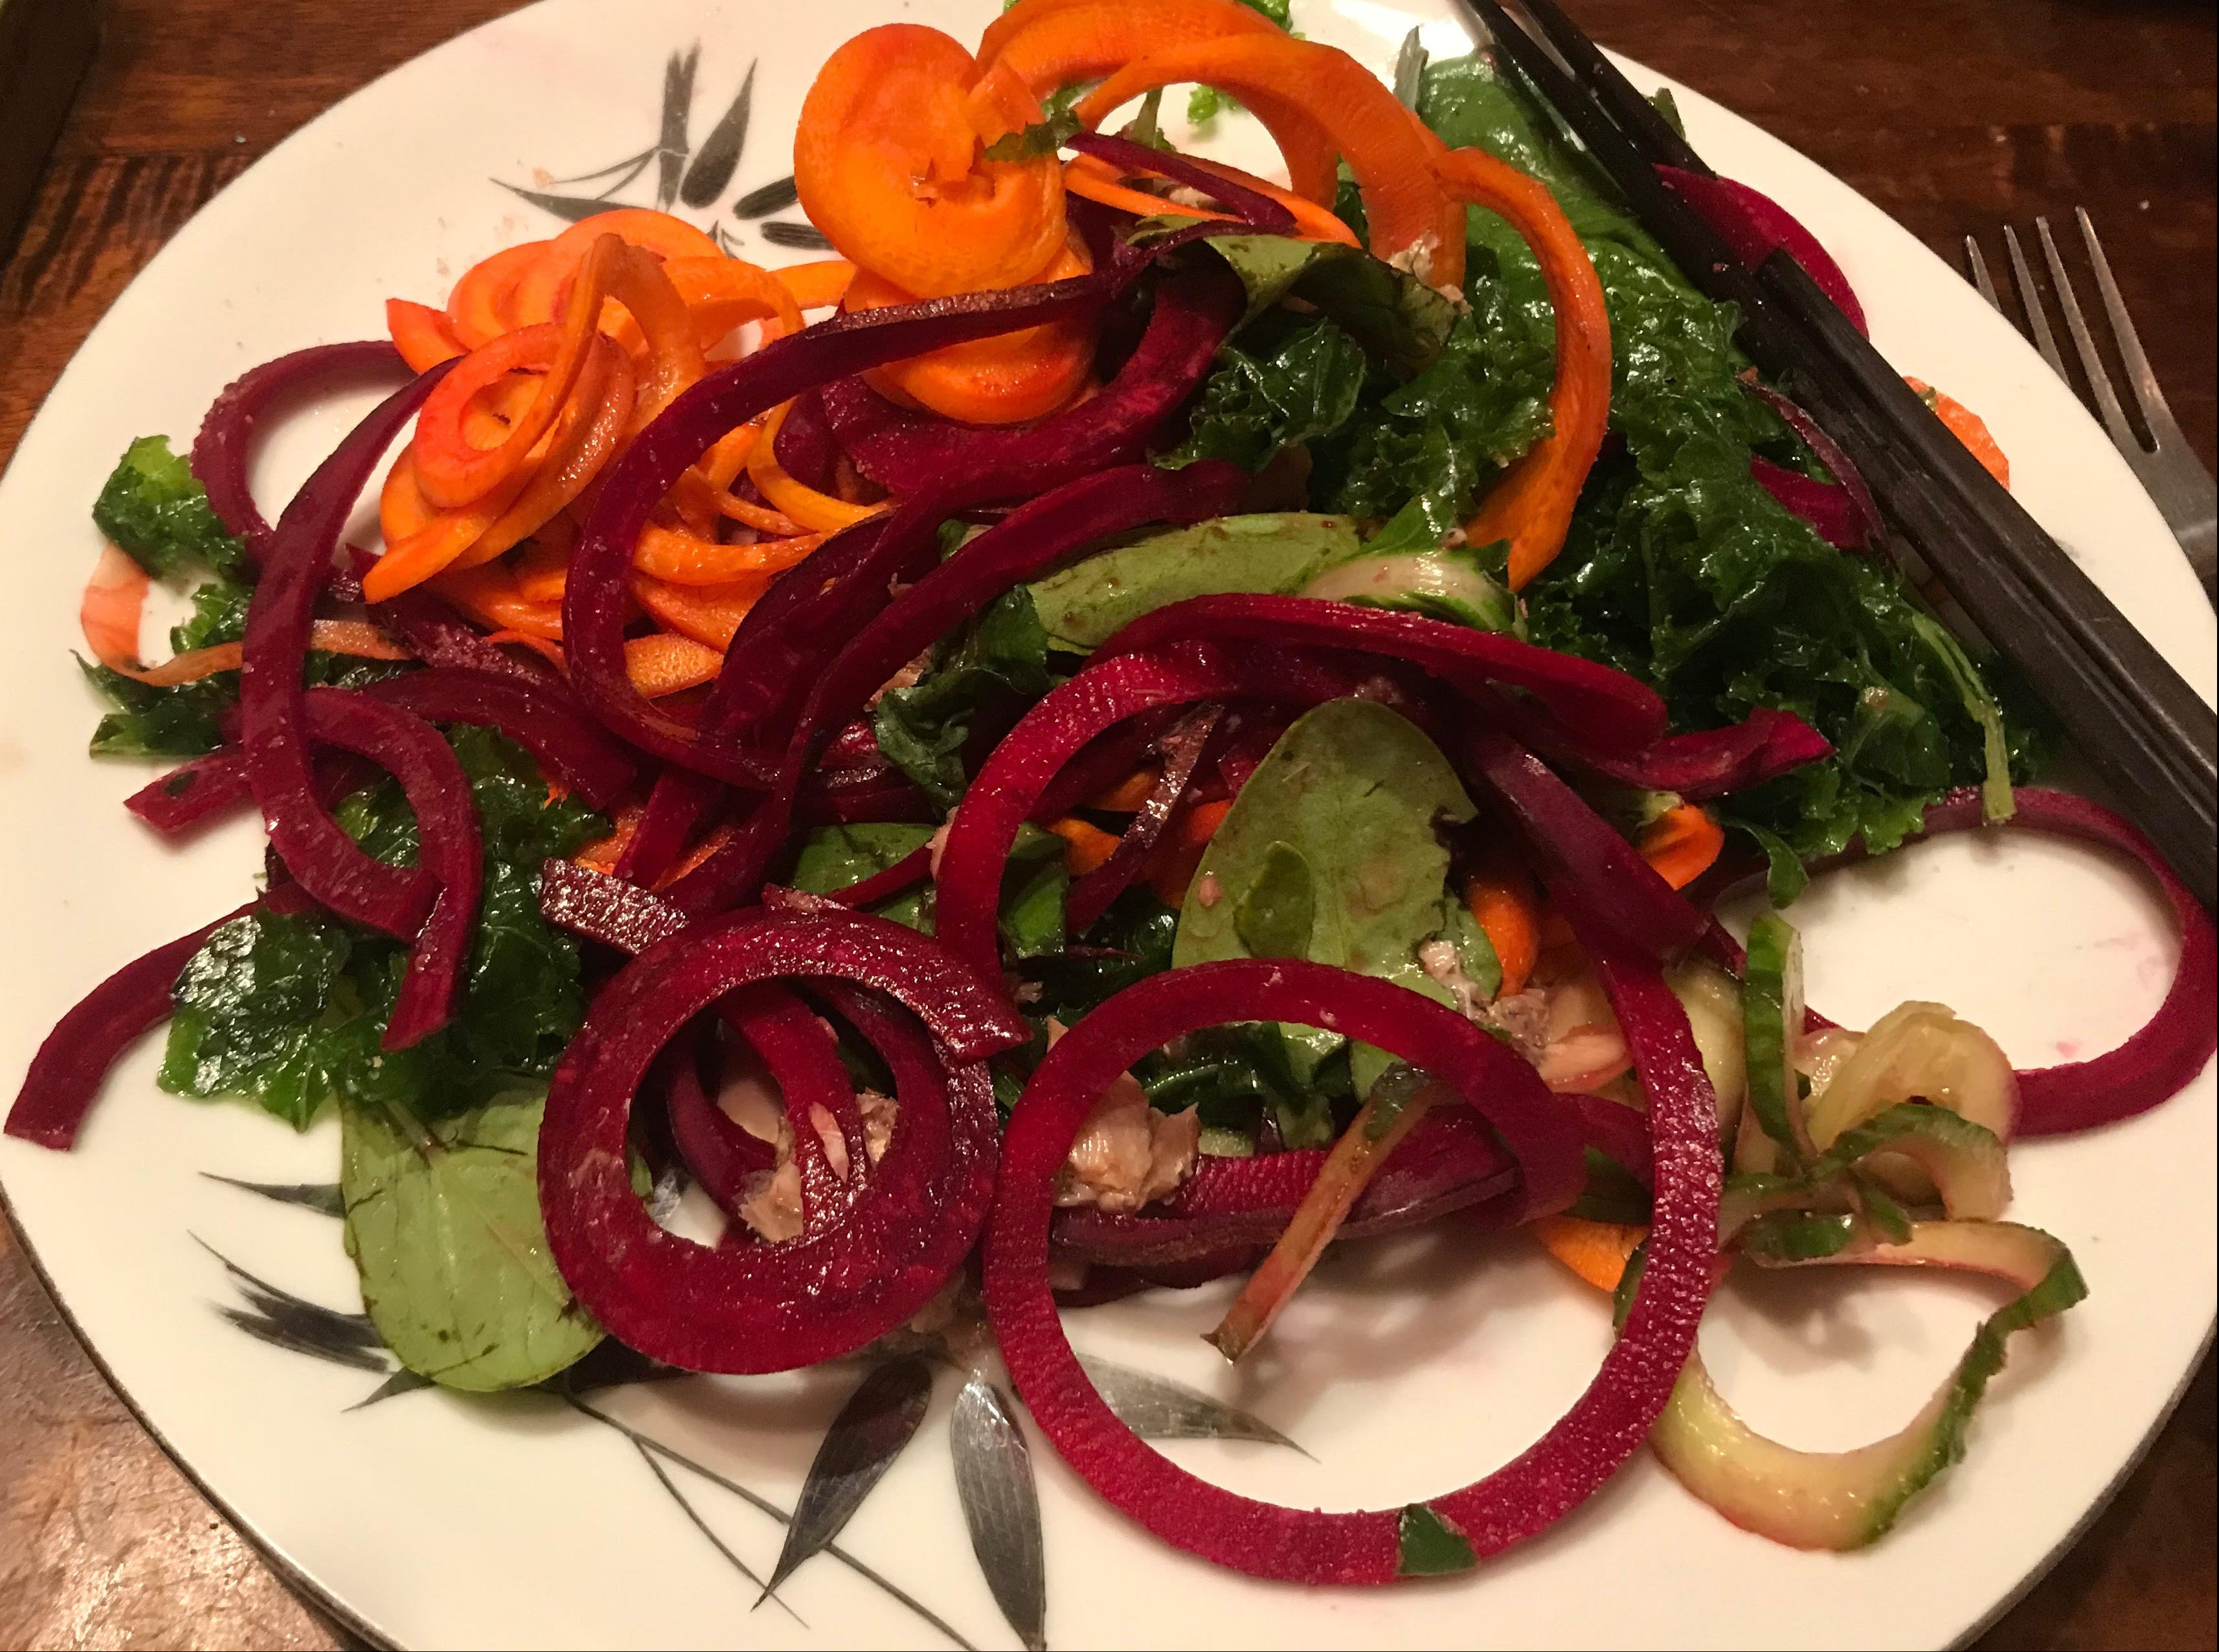 spiralized beets and carrots with massaged kale and topped with sardines! Yummmmm...